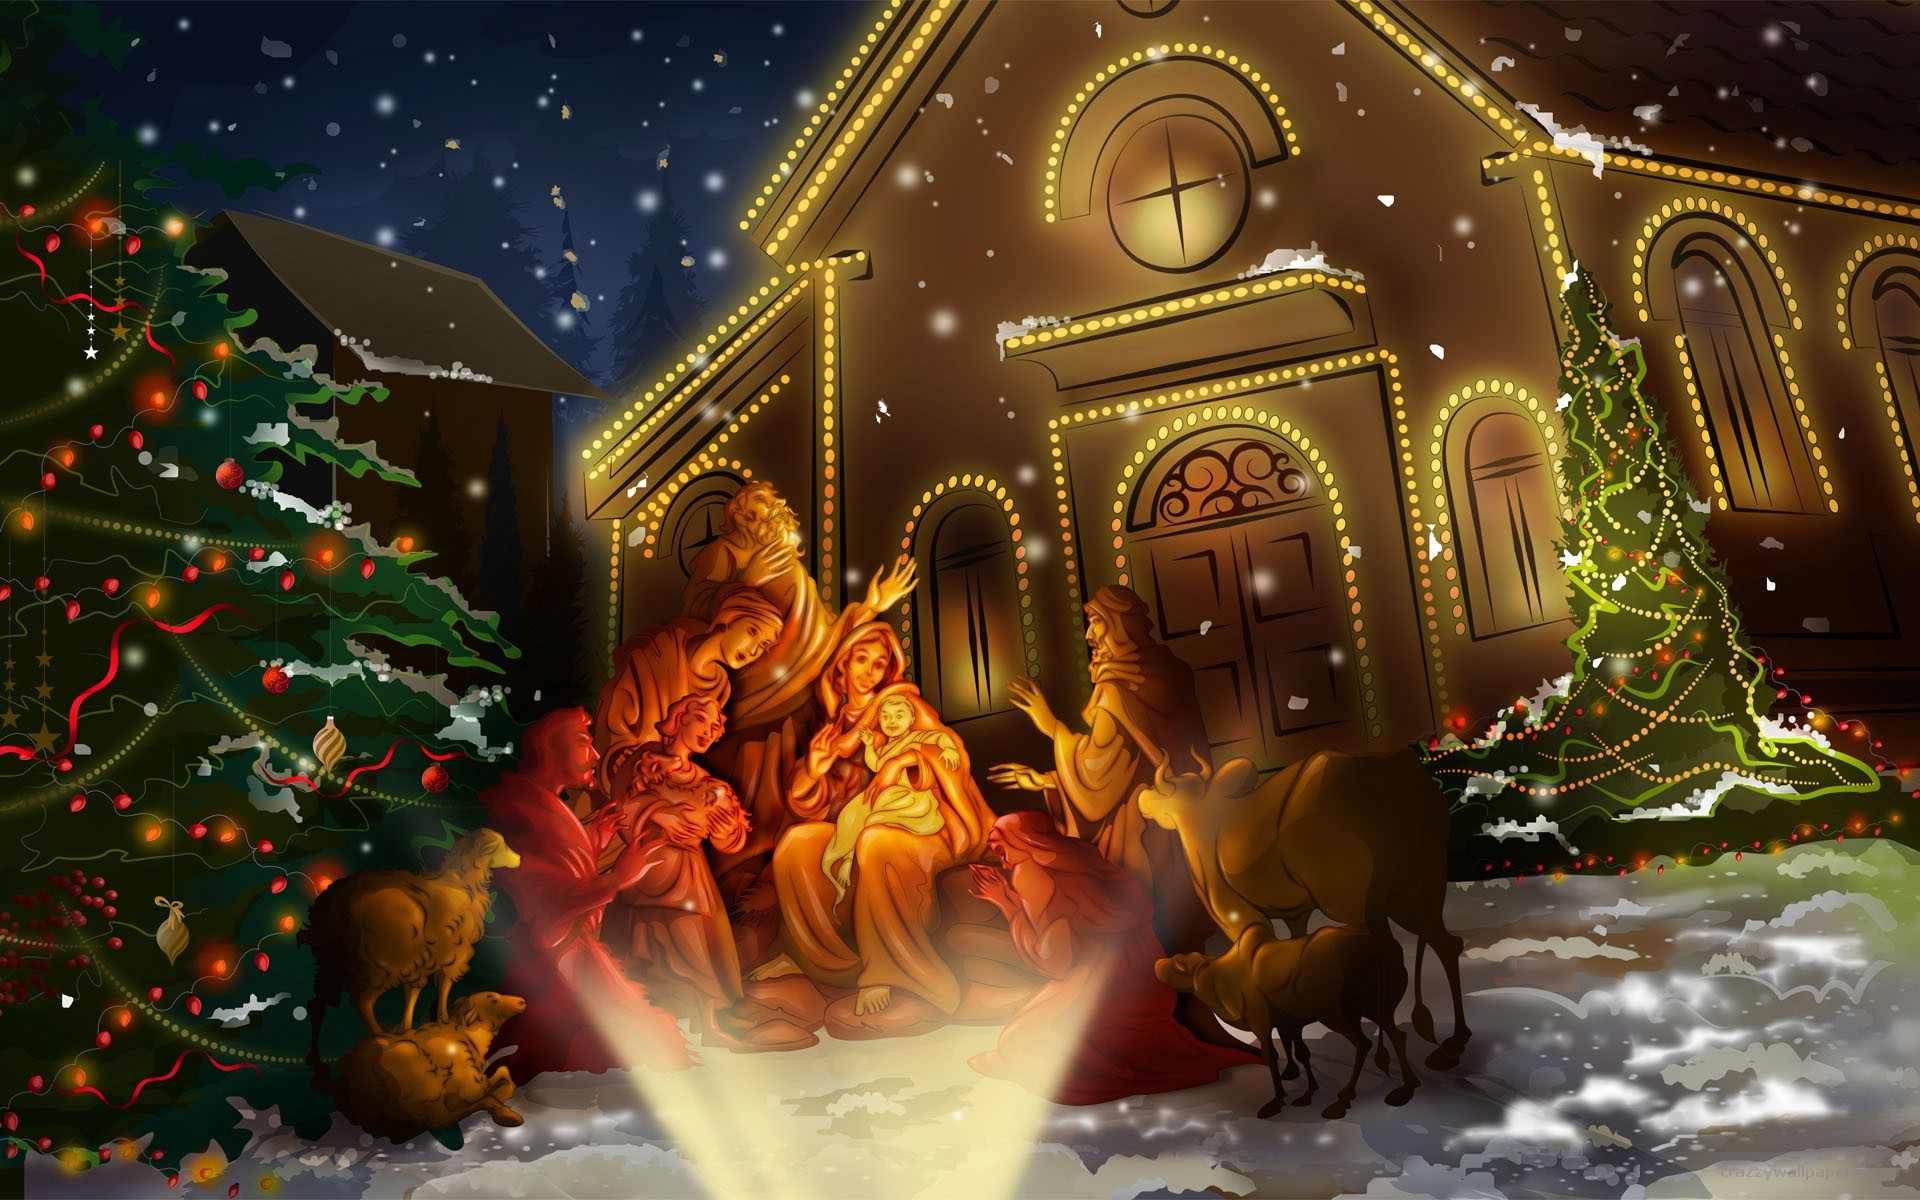 Beautiful Desktop Wallpapers 3d Christmas   ImgHD Browse and 1920x1200